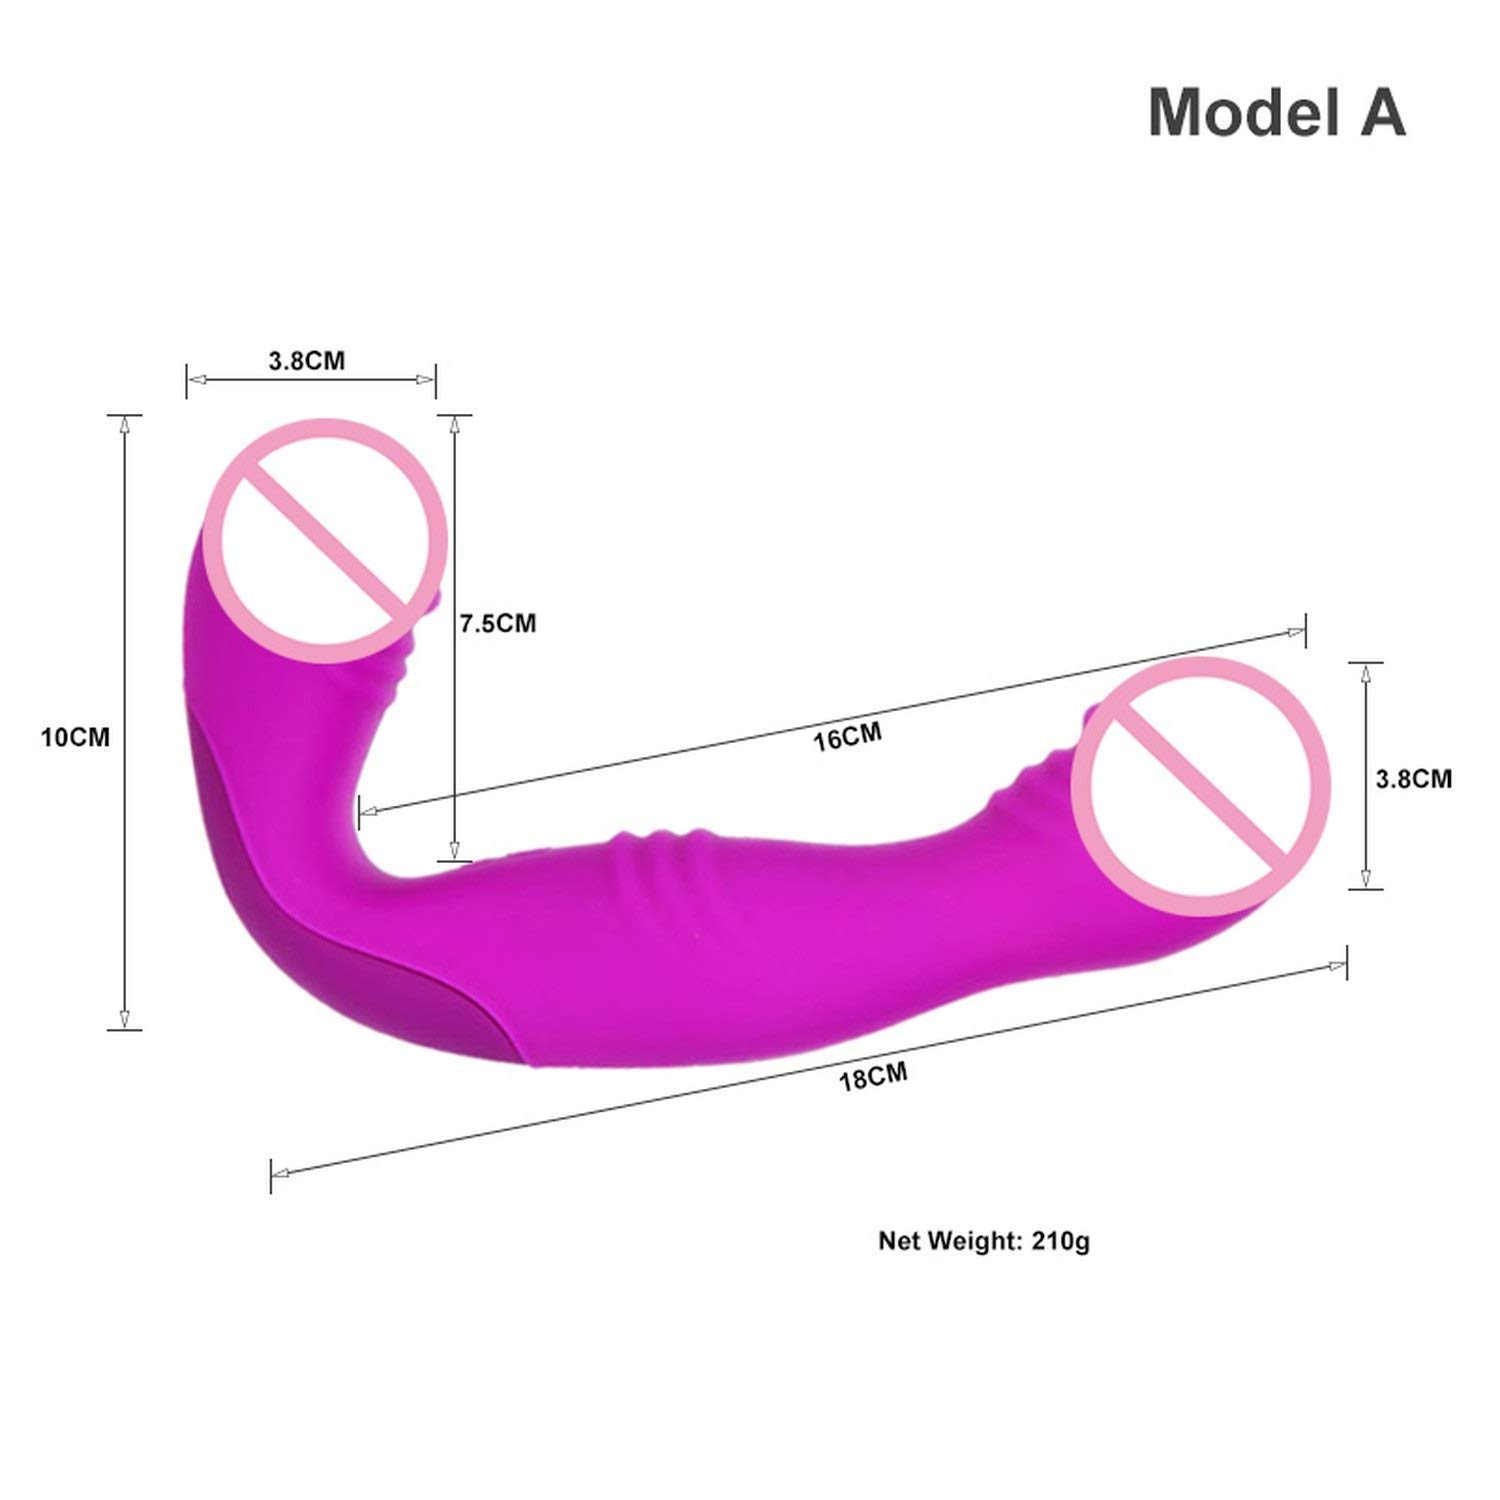 DKFH Shirts New 30 Modes Vibarators Strapless Strapon Rechargeable Lesbian Strap On Double Ended Penǐs sexae Toys for Woman,Model A KDE by DKFH